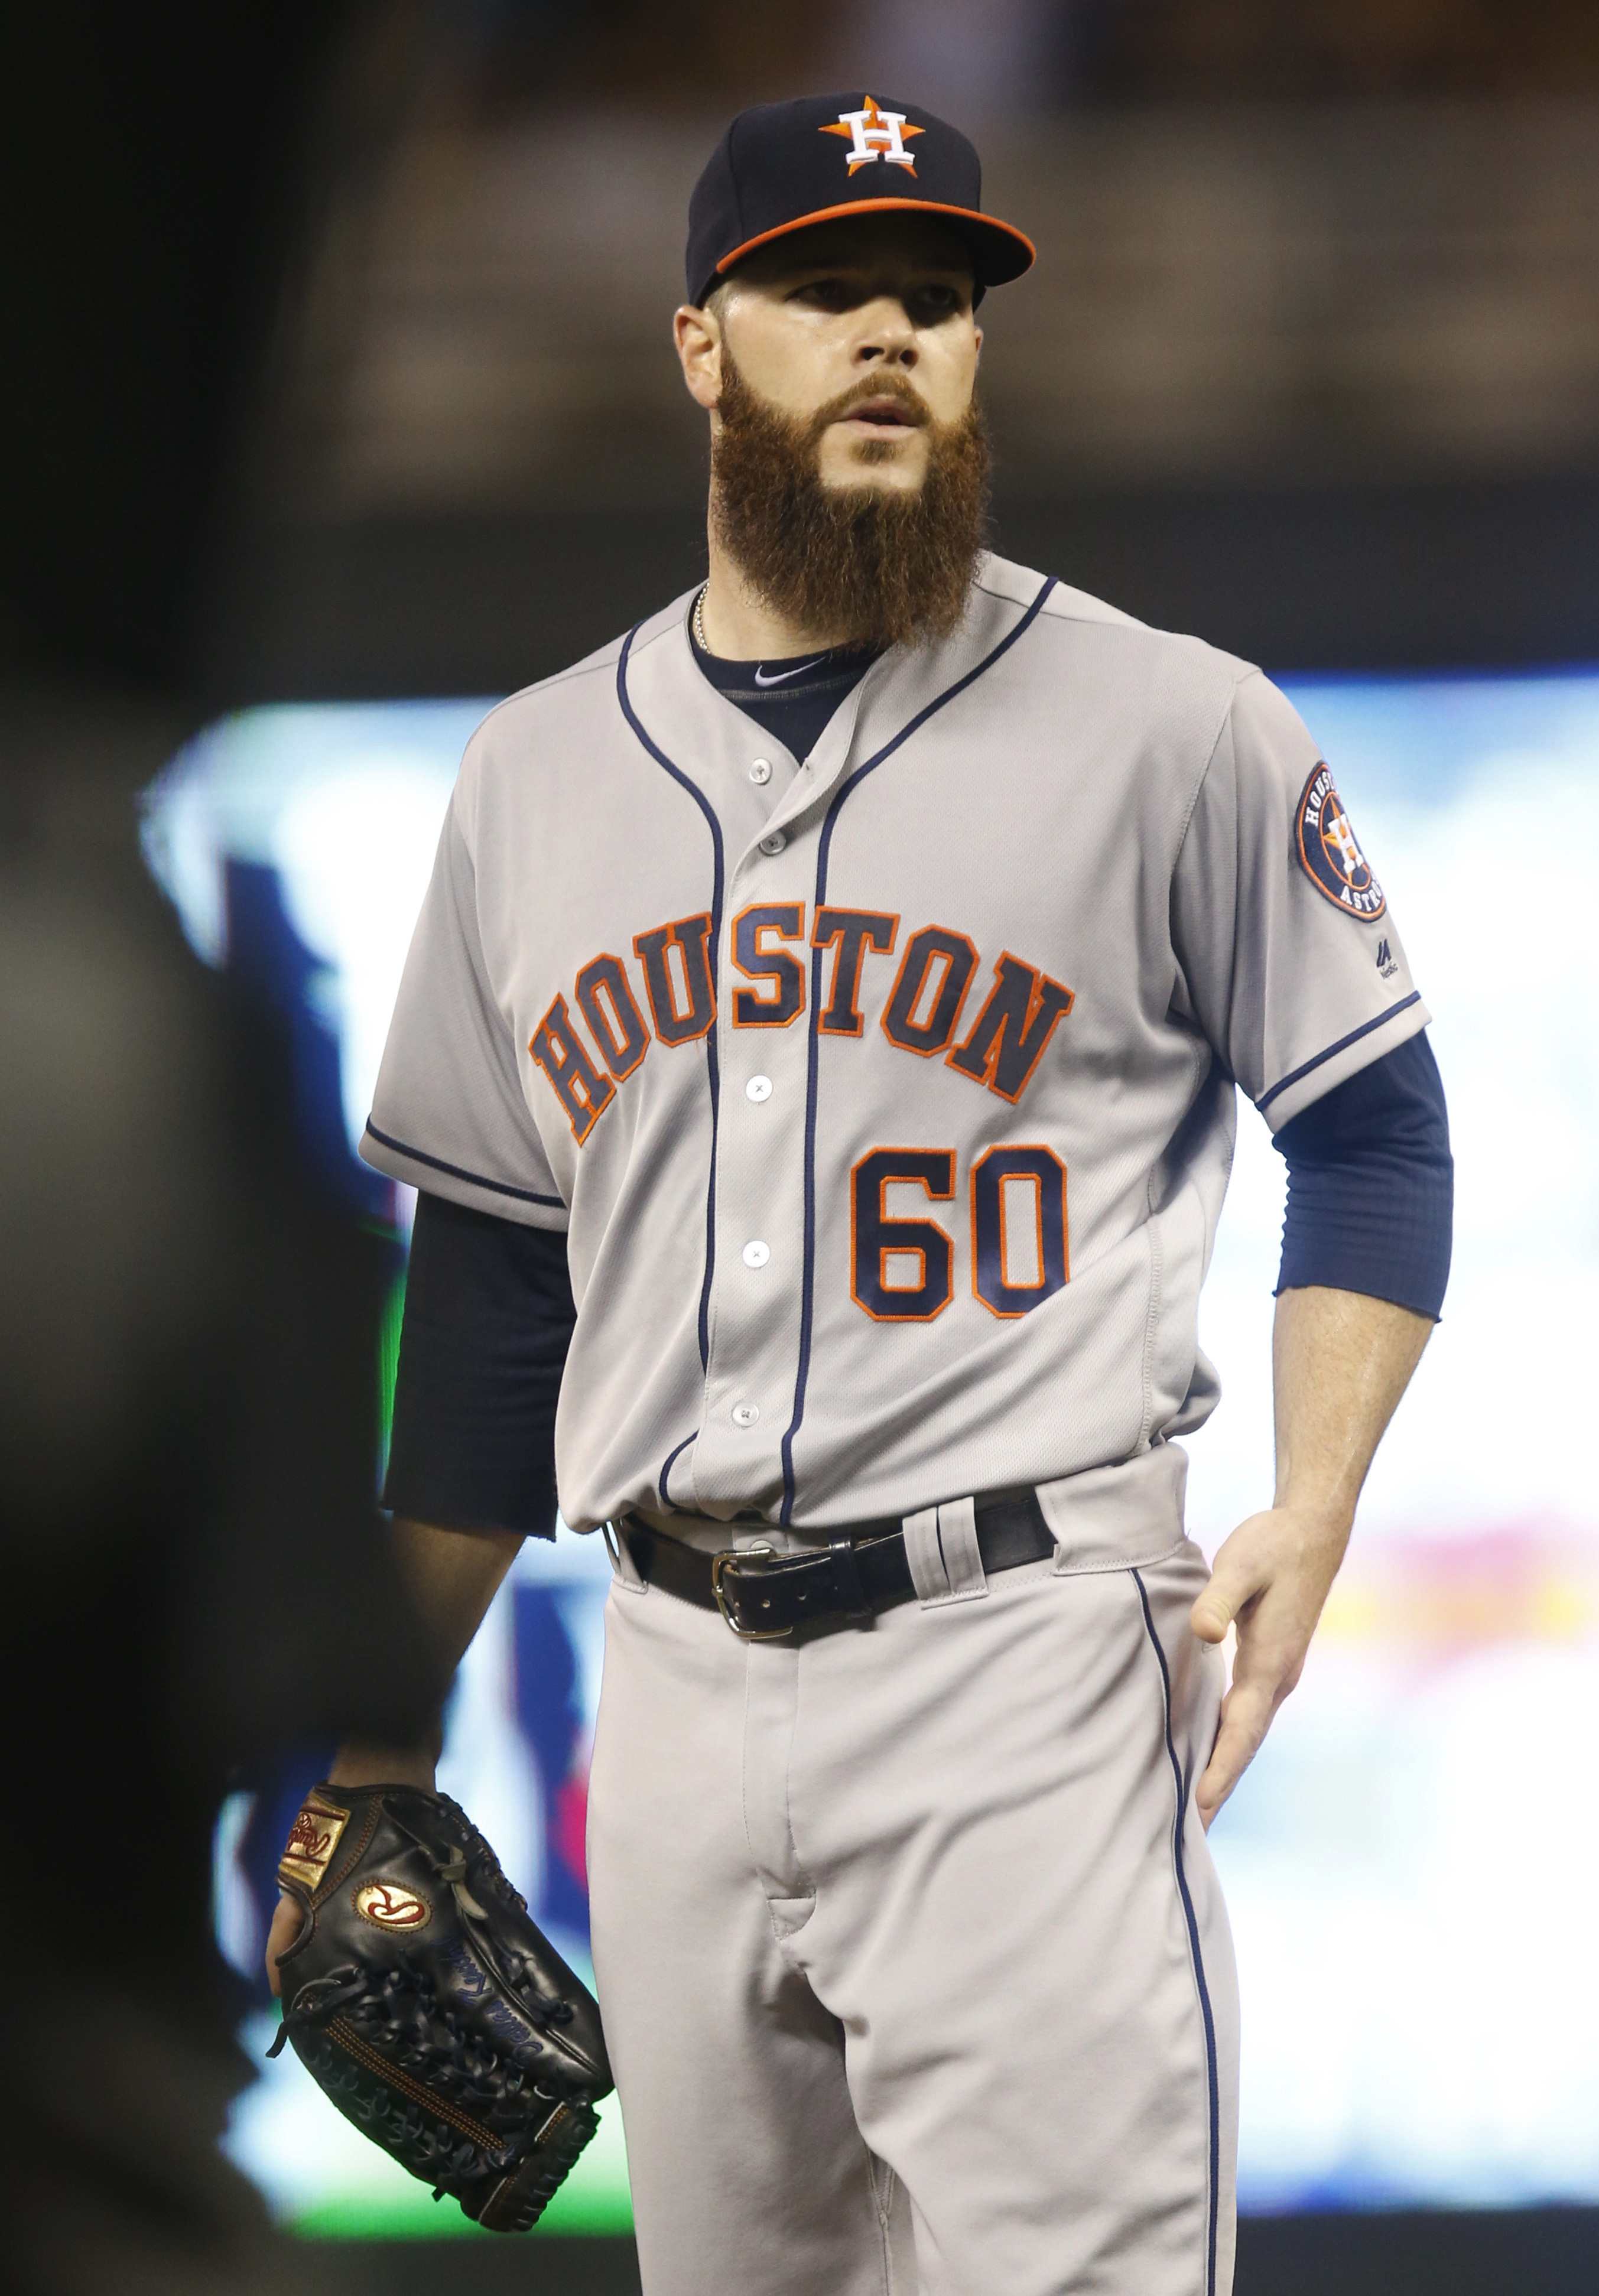 Houston Astros pitcher Dallas Keuchel gives up a solo home run to Minnesota Twins' Brian Dozier in the first inning of a baseball game Wednesday, Aug. 10, 2016 in Minneapolis. (AP Photo/Jim Mone)